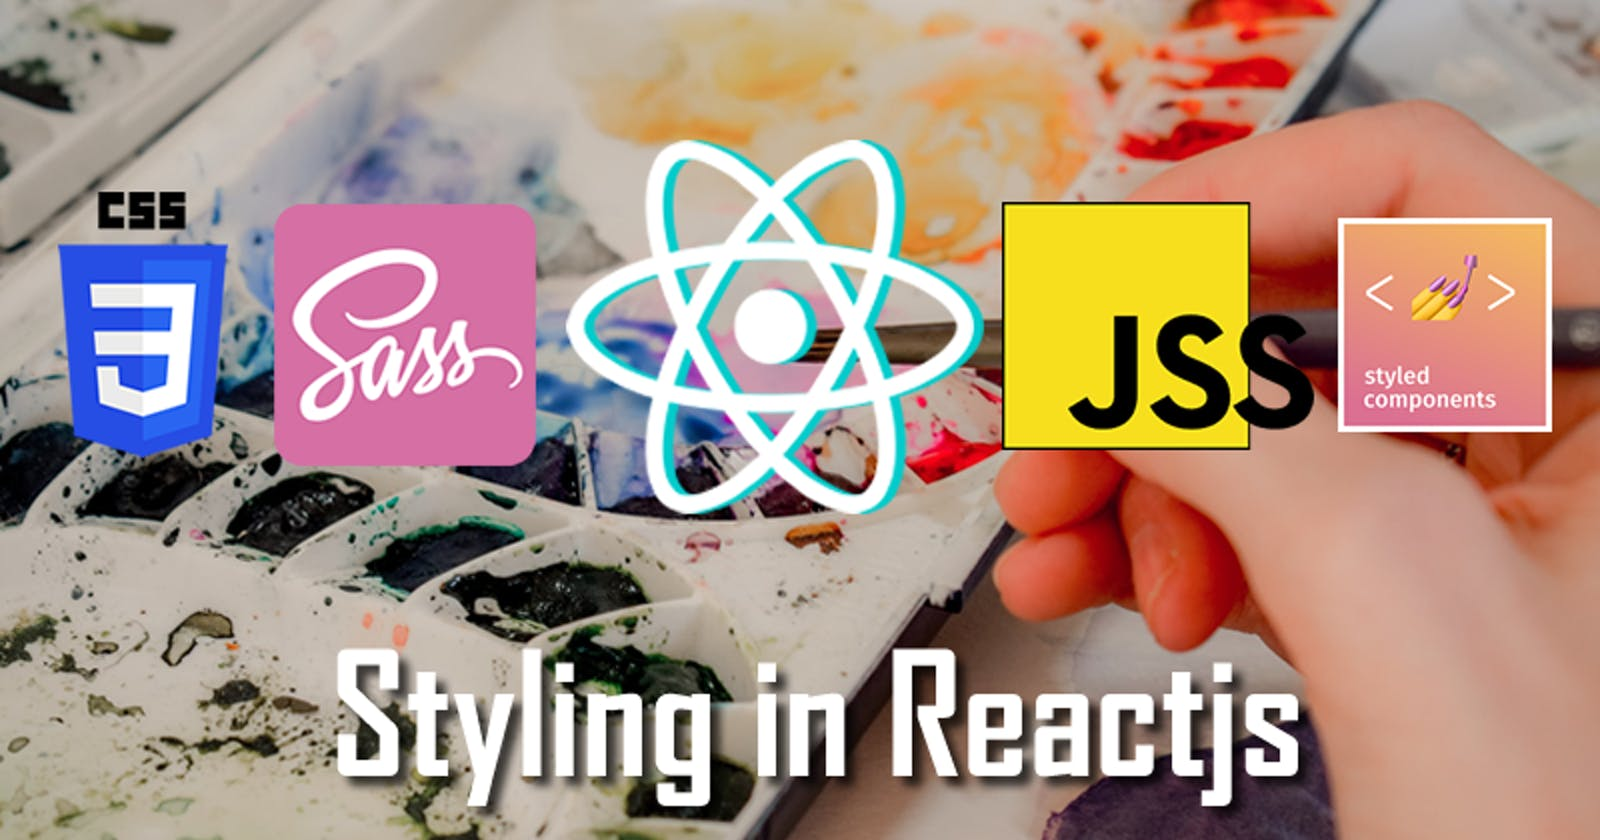 Styling in Reactjs - An Overview and Walkthrough Tutorial